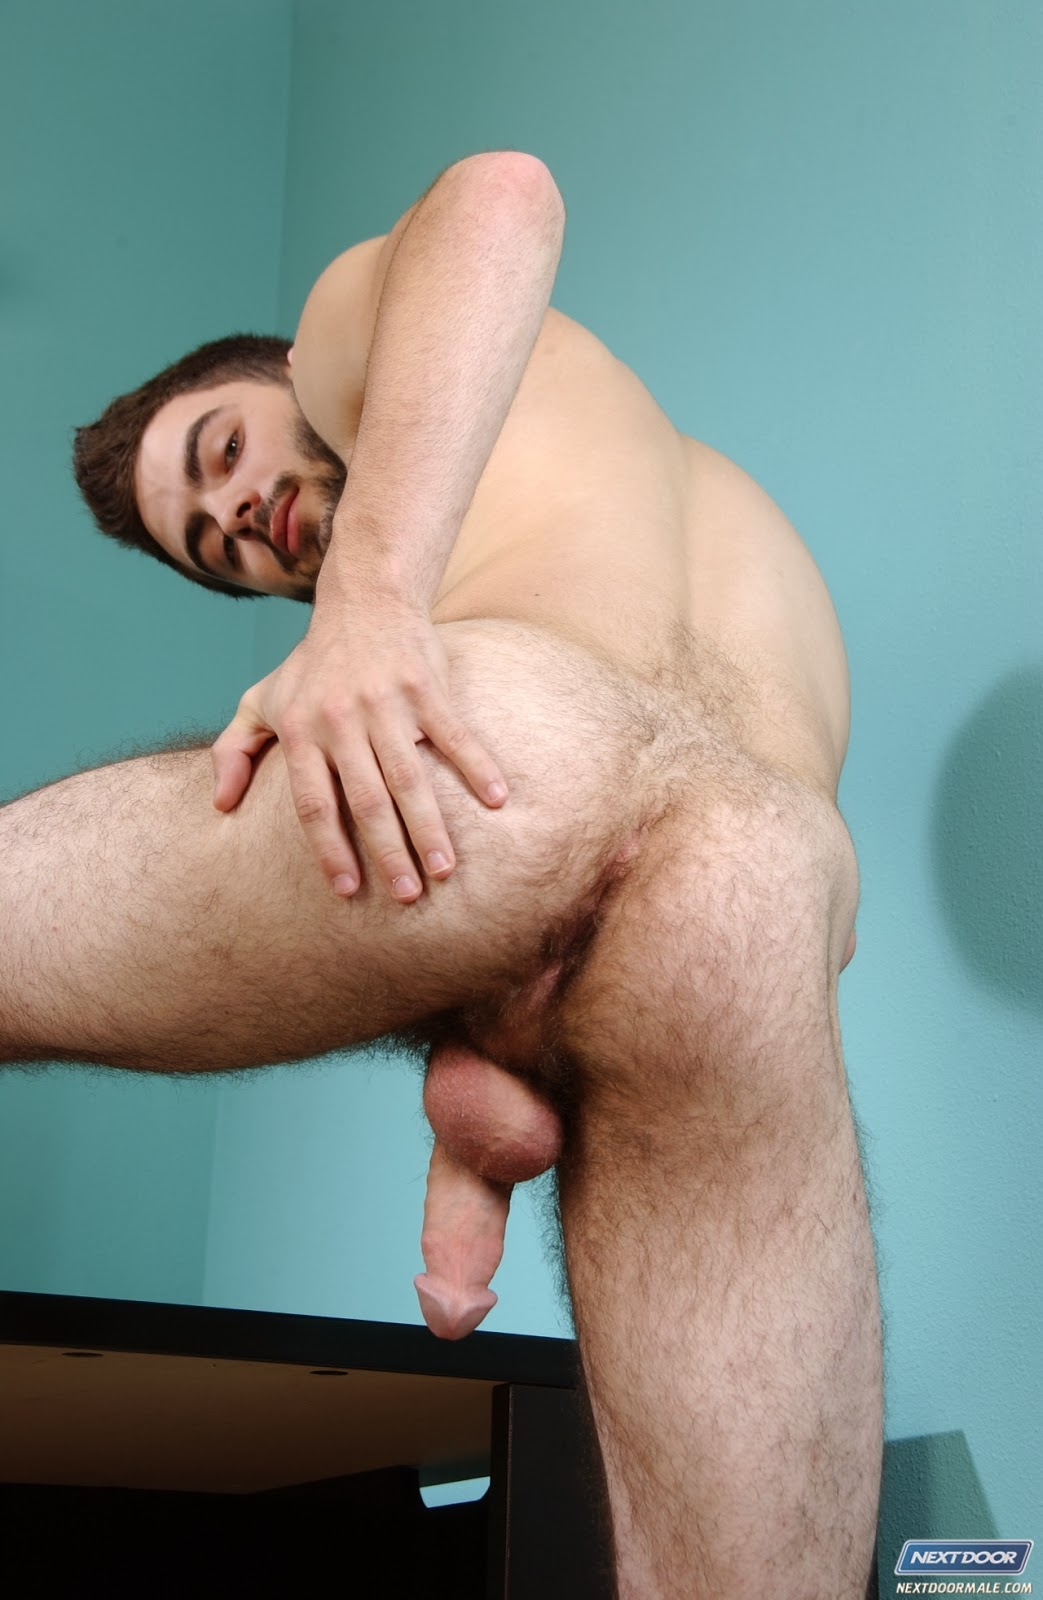 Big cock hairy men ass hol pic pity, that